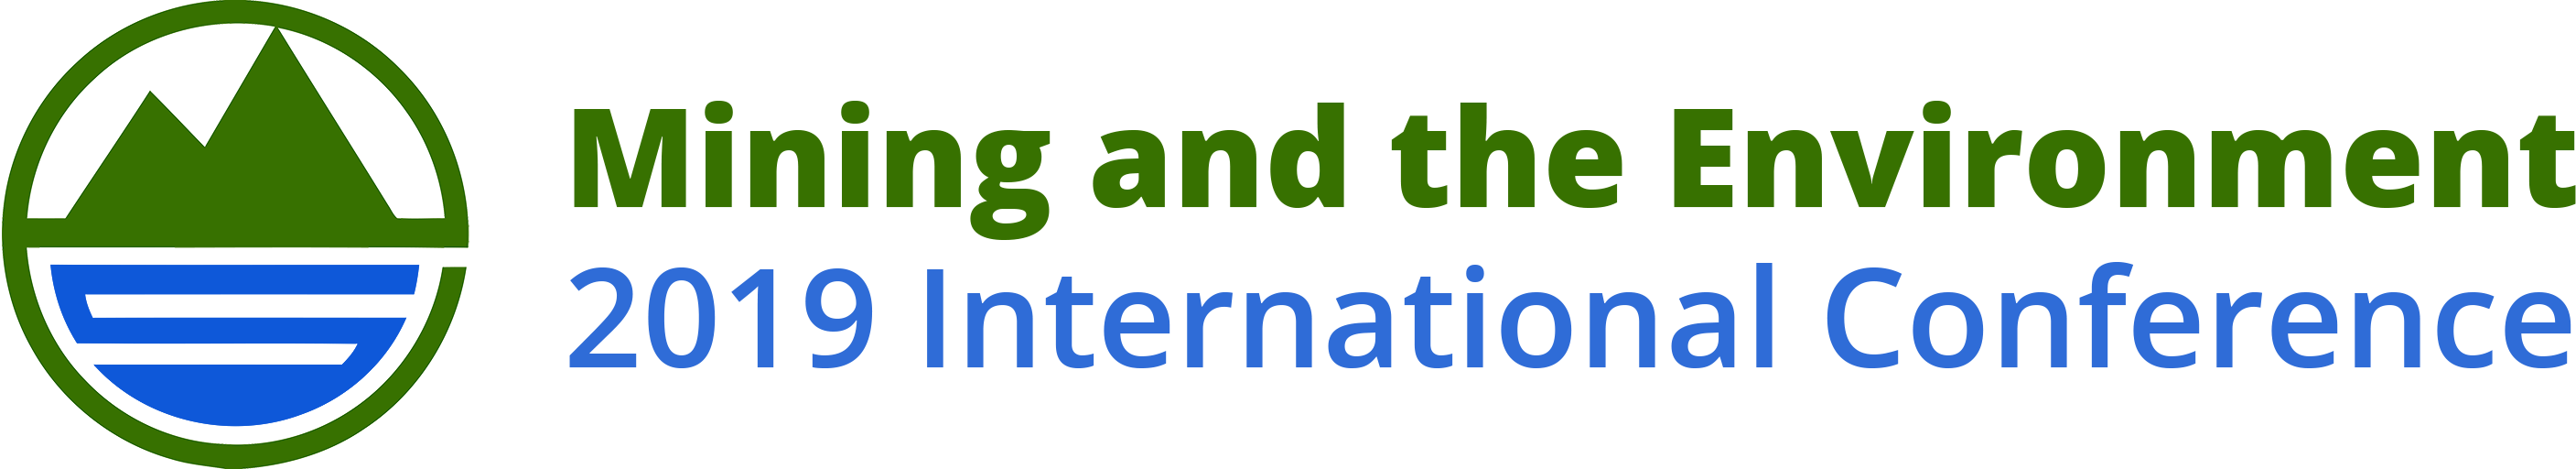 Mining and the Environment International Conference